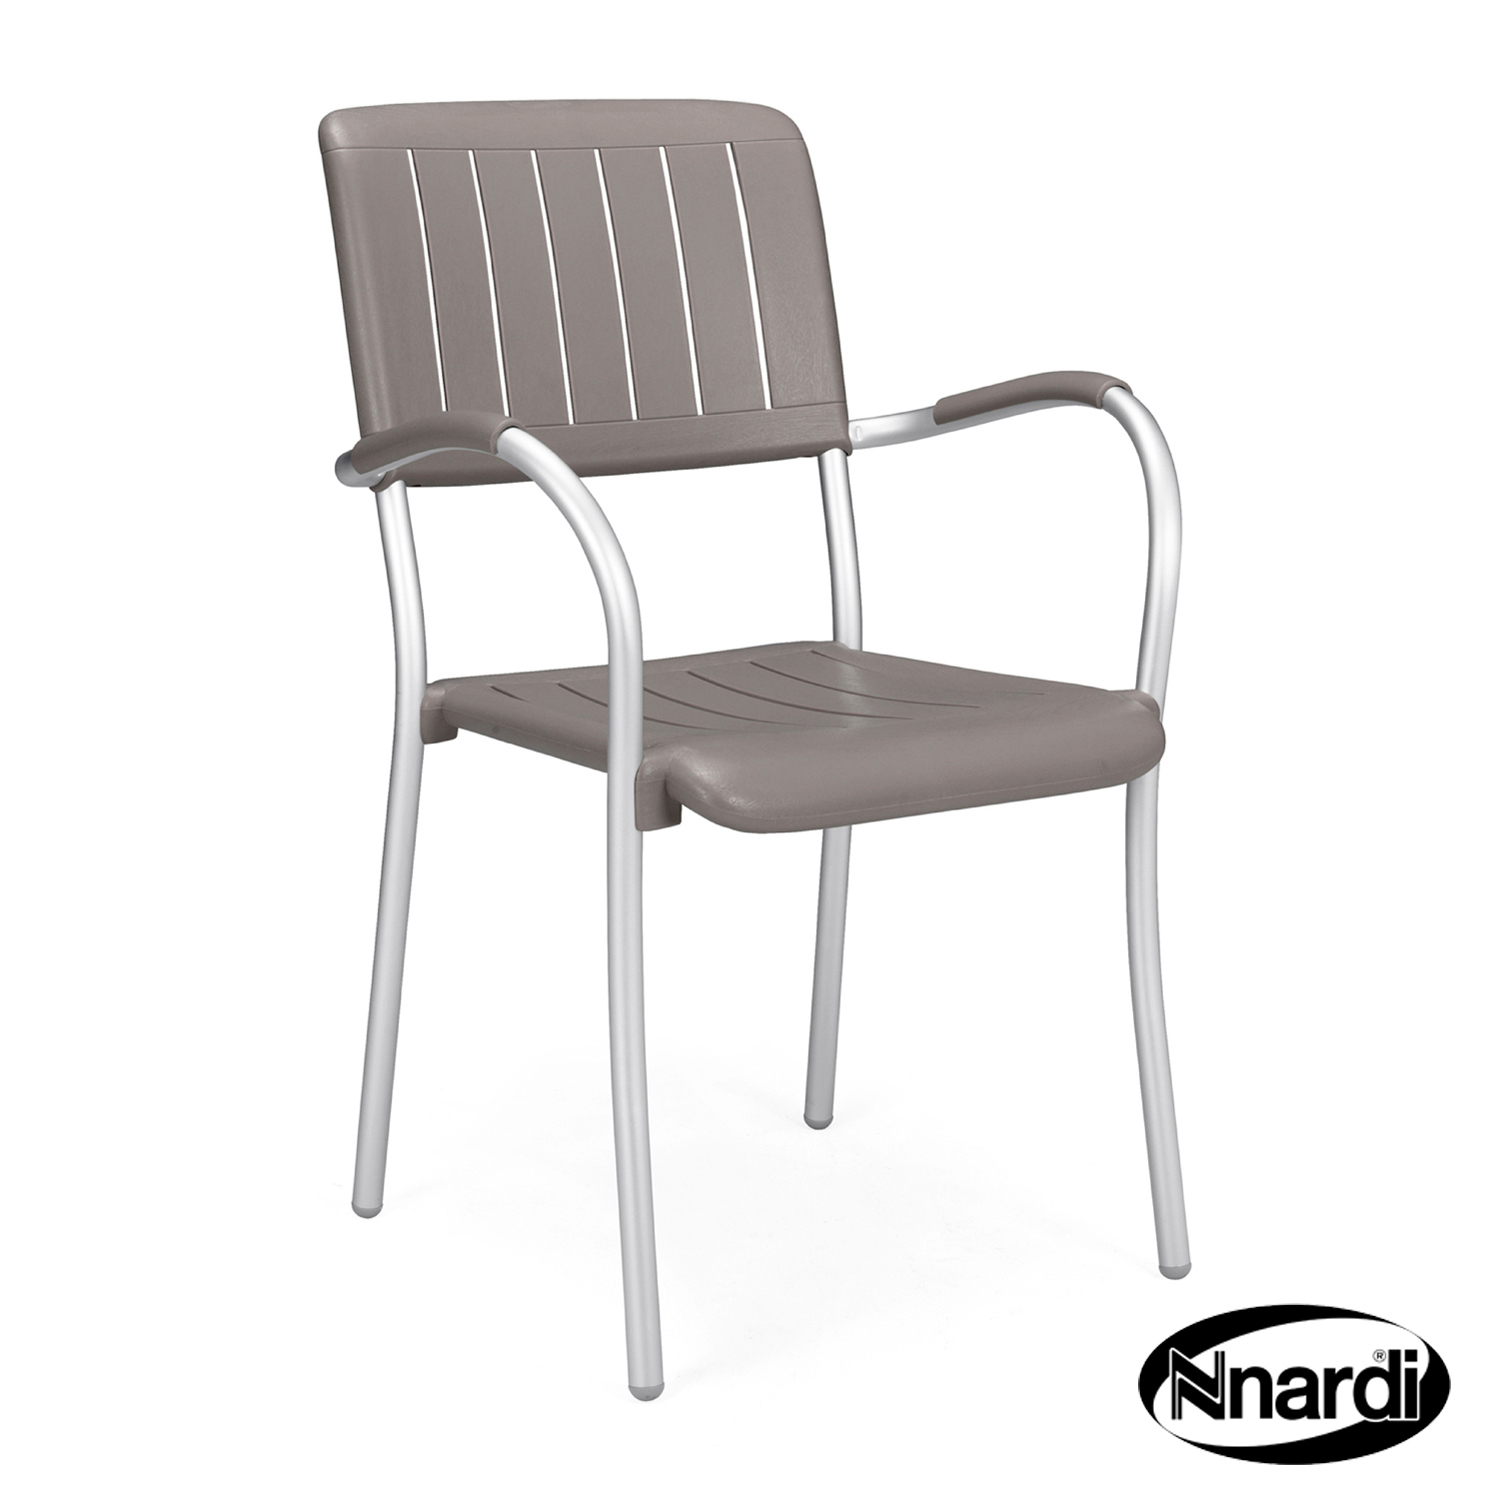 Musa Chair in Turtle Dove grey